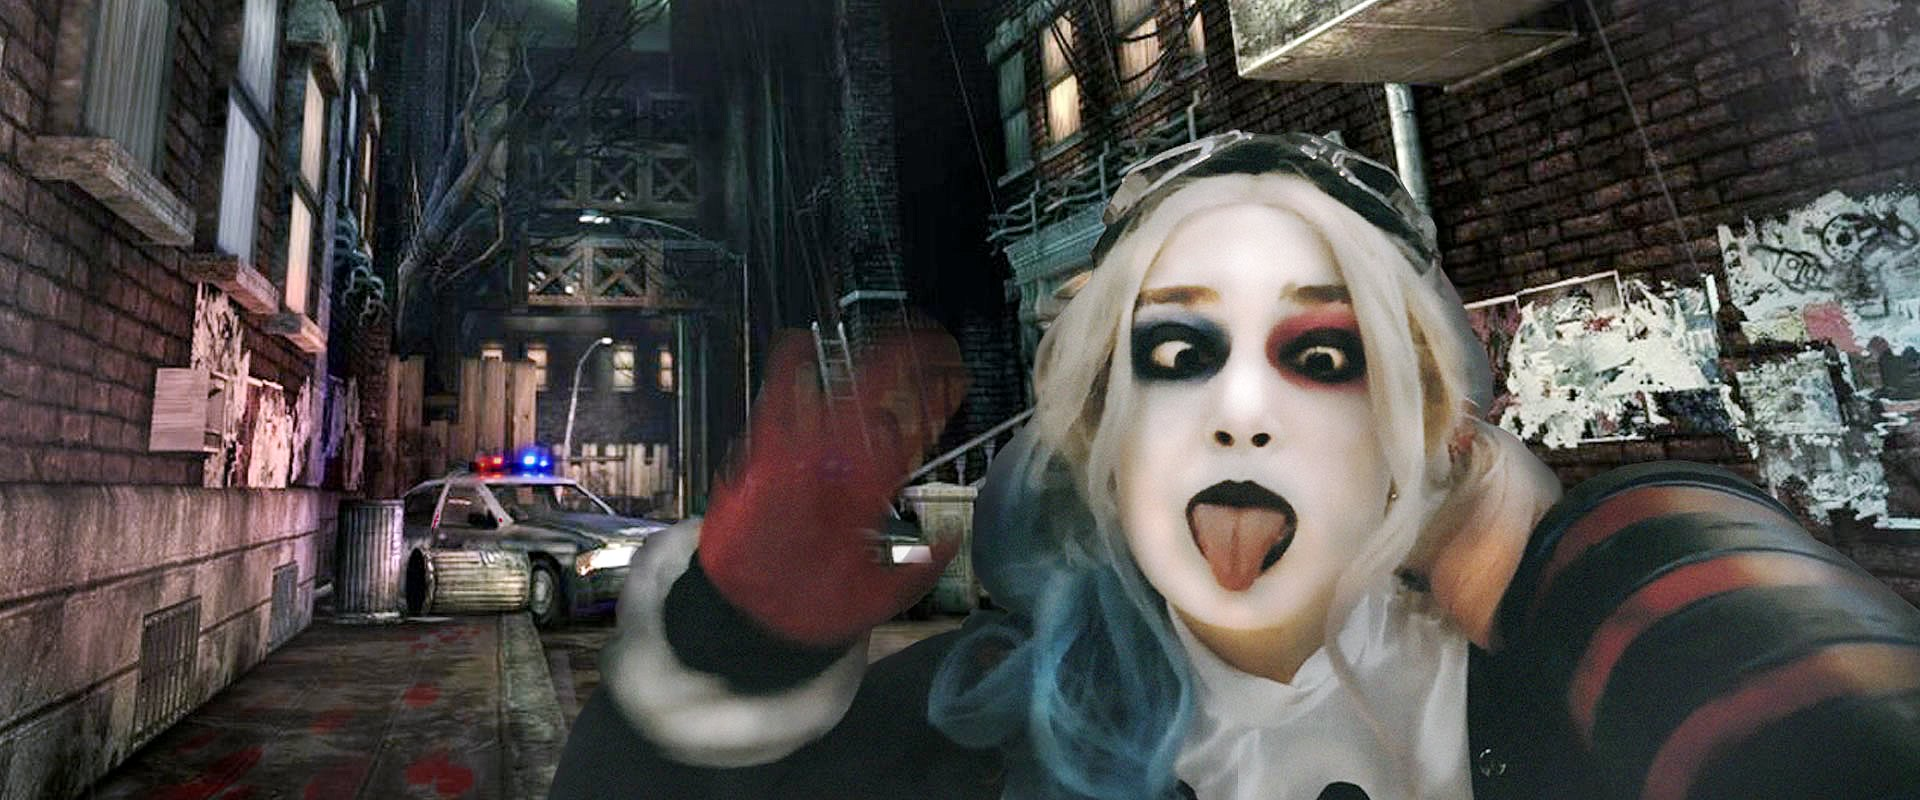 cosplayer sillycat harley quinn portugal 2 - SillyCat Cosplayer